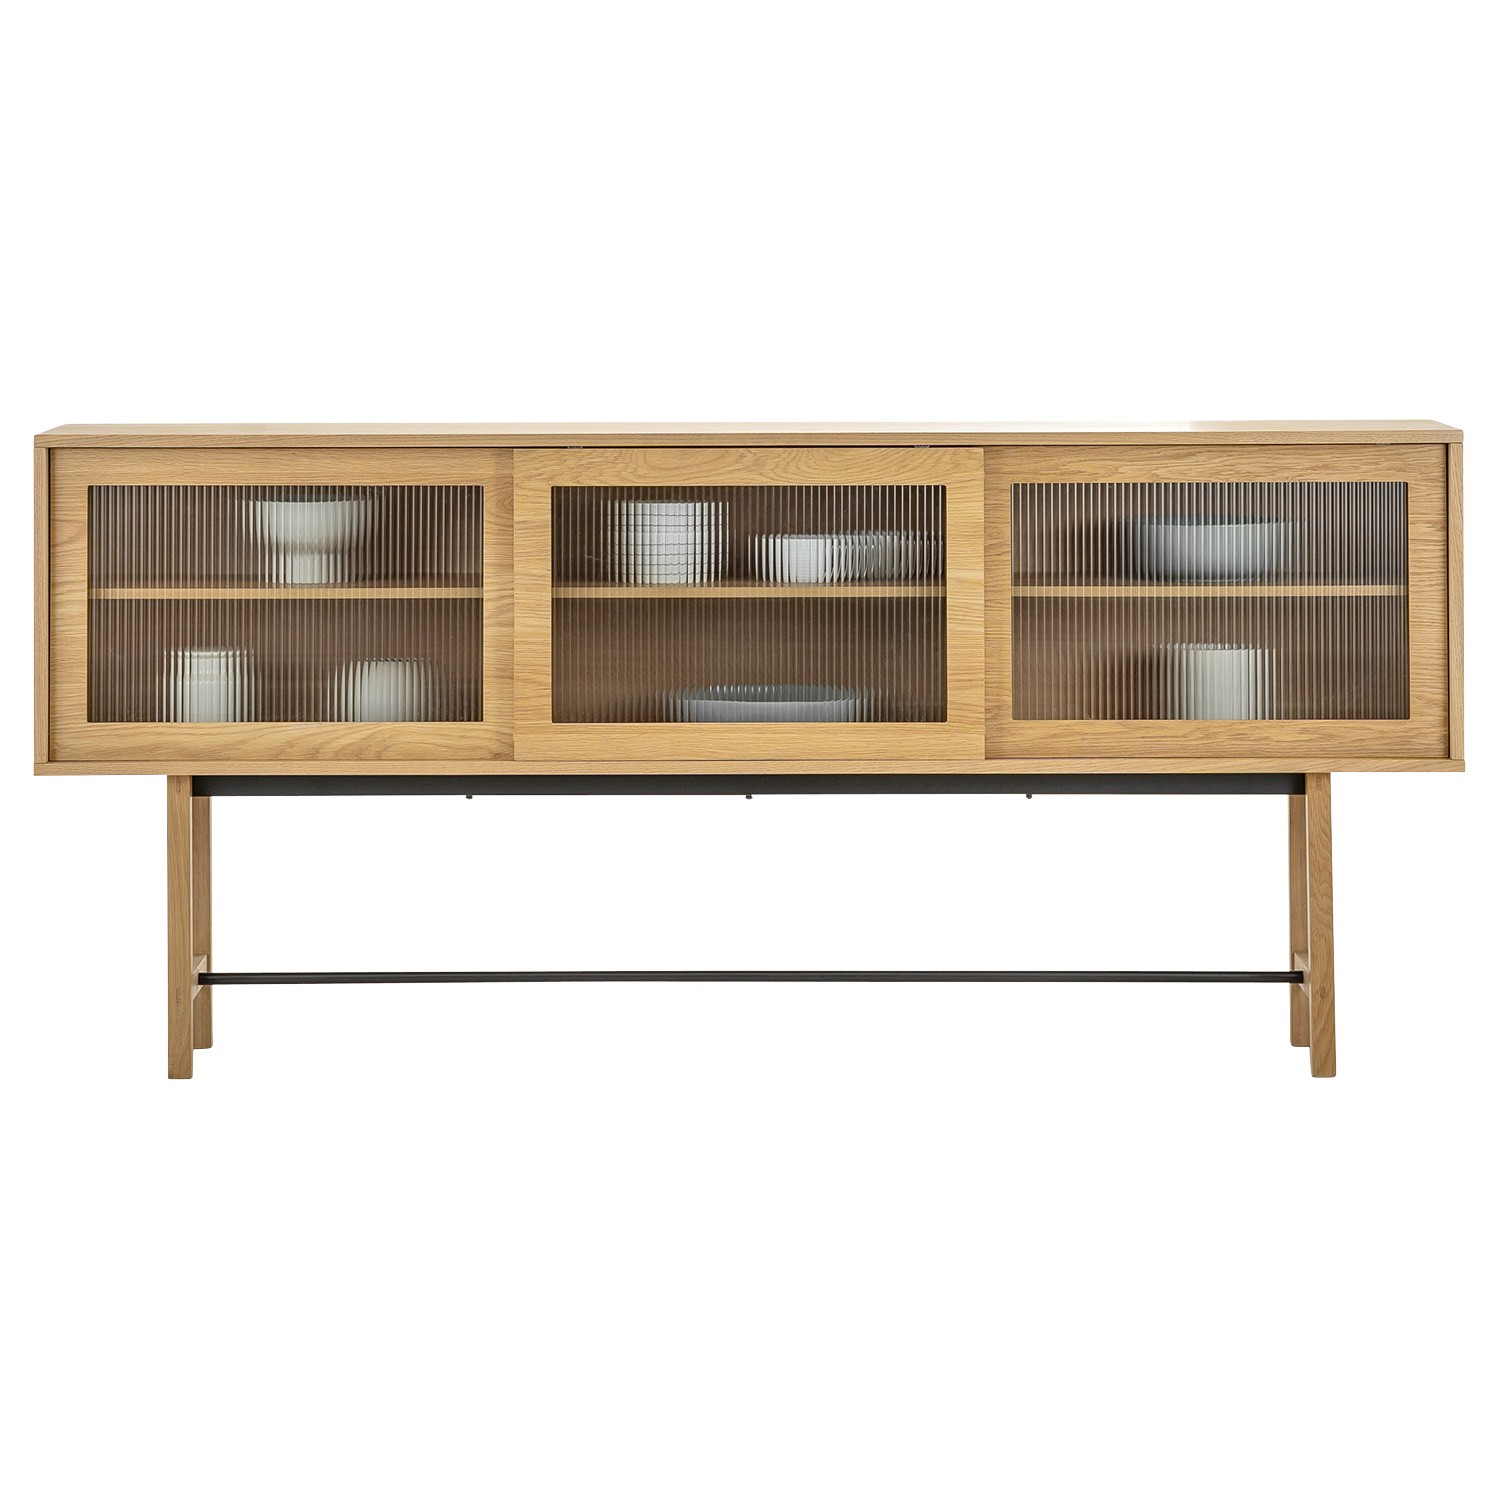 Arae Sliding Door Sideboard, 210cm, Natural